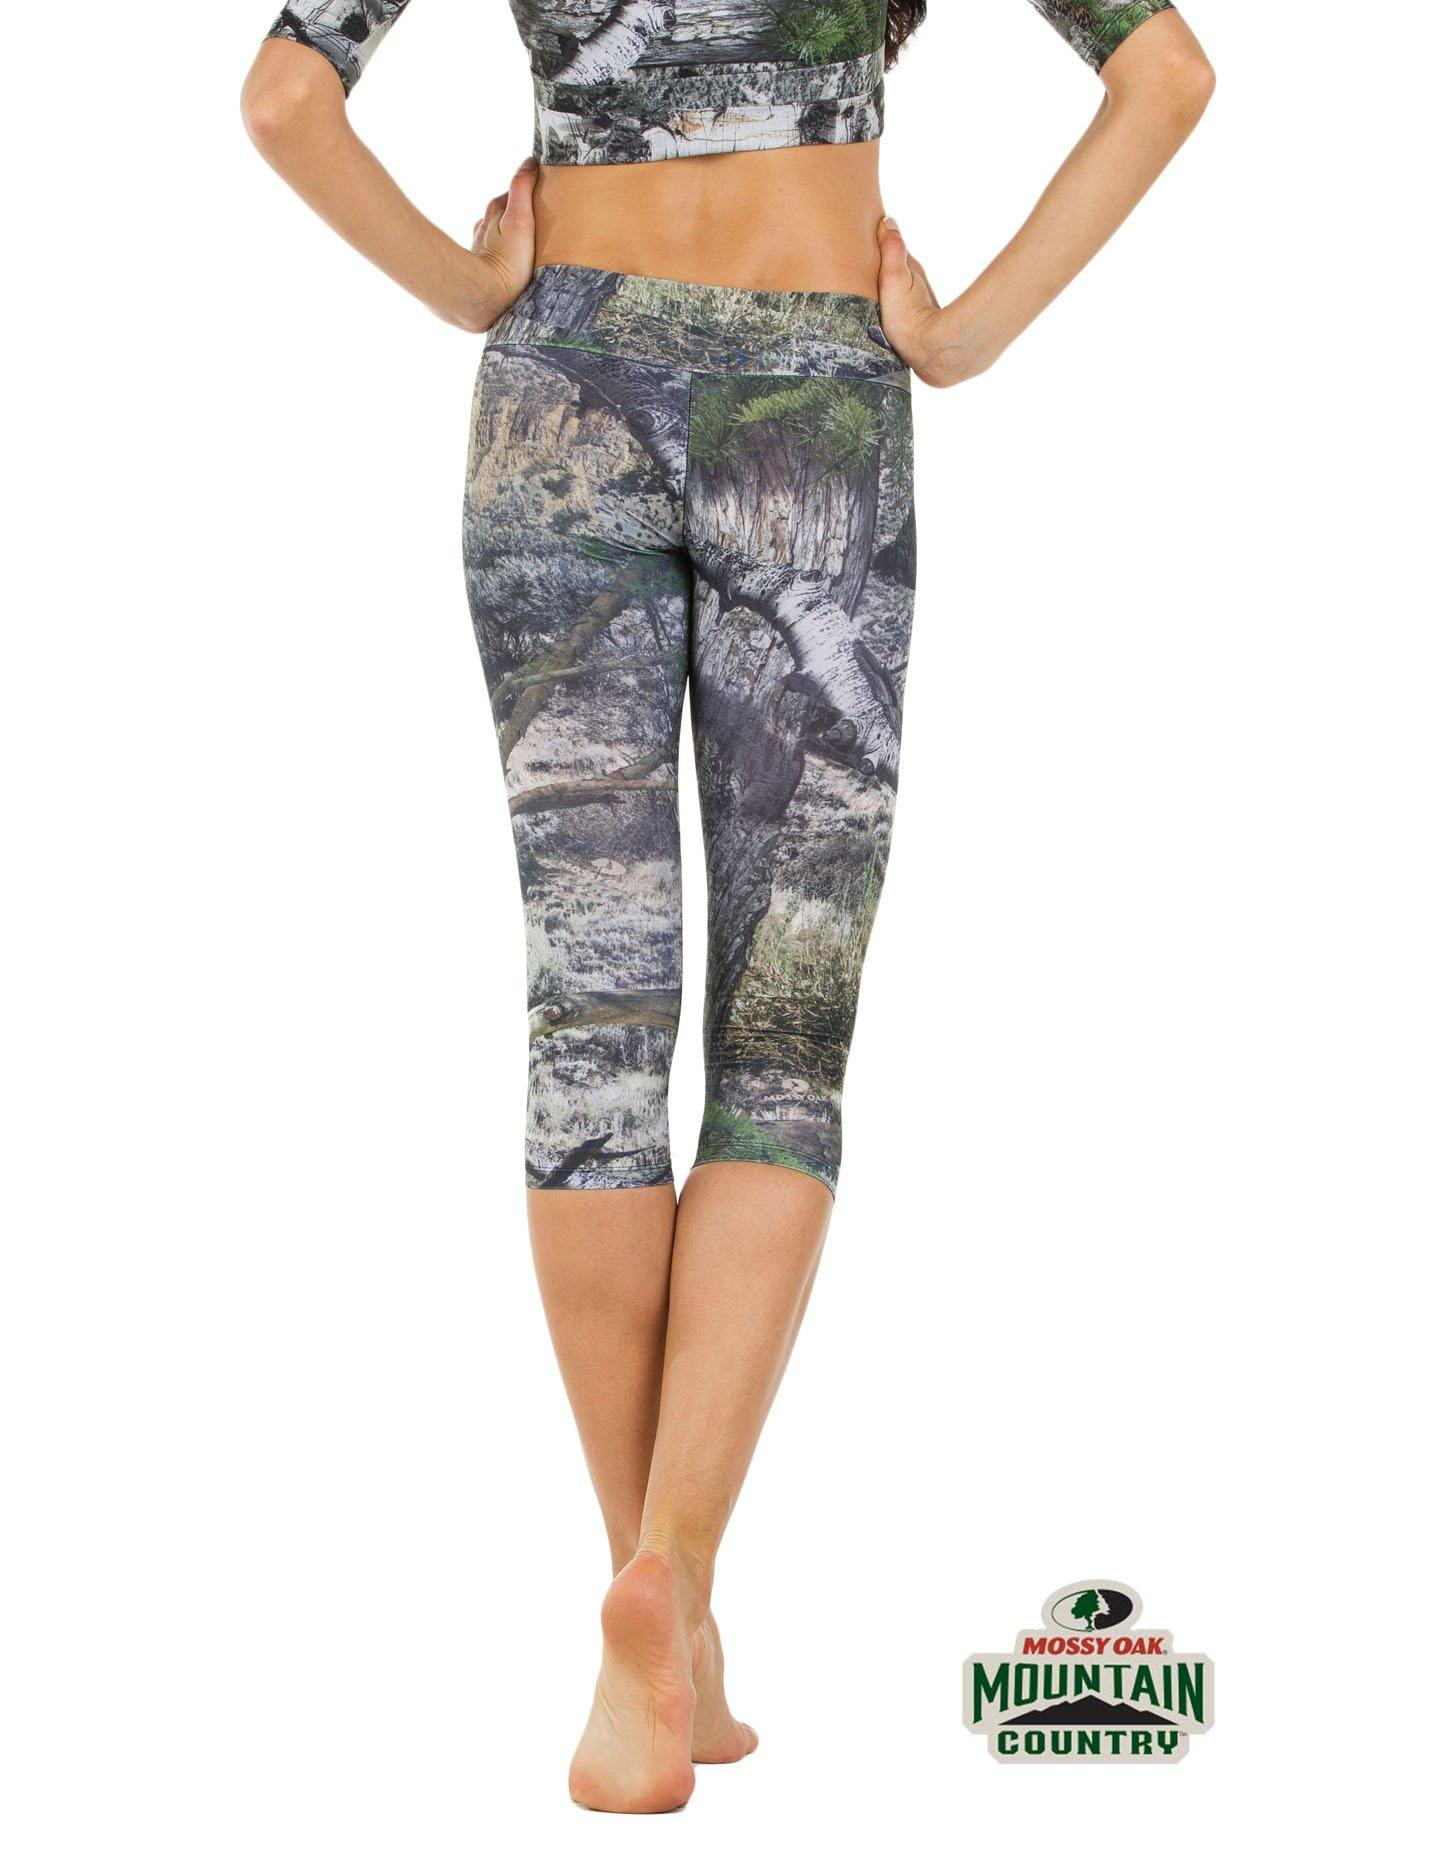 Apsara Leggings Low Waist Capri, Mossy Oak Mountain Country